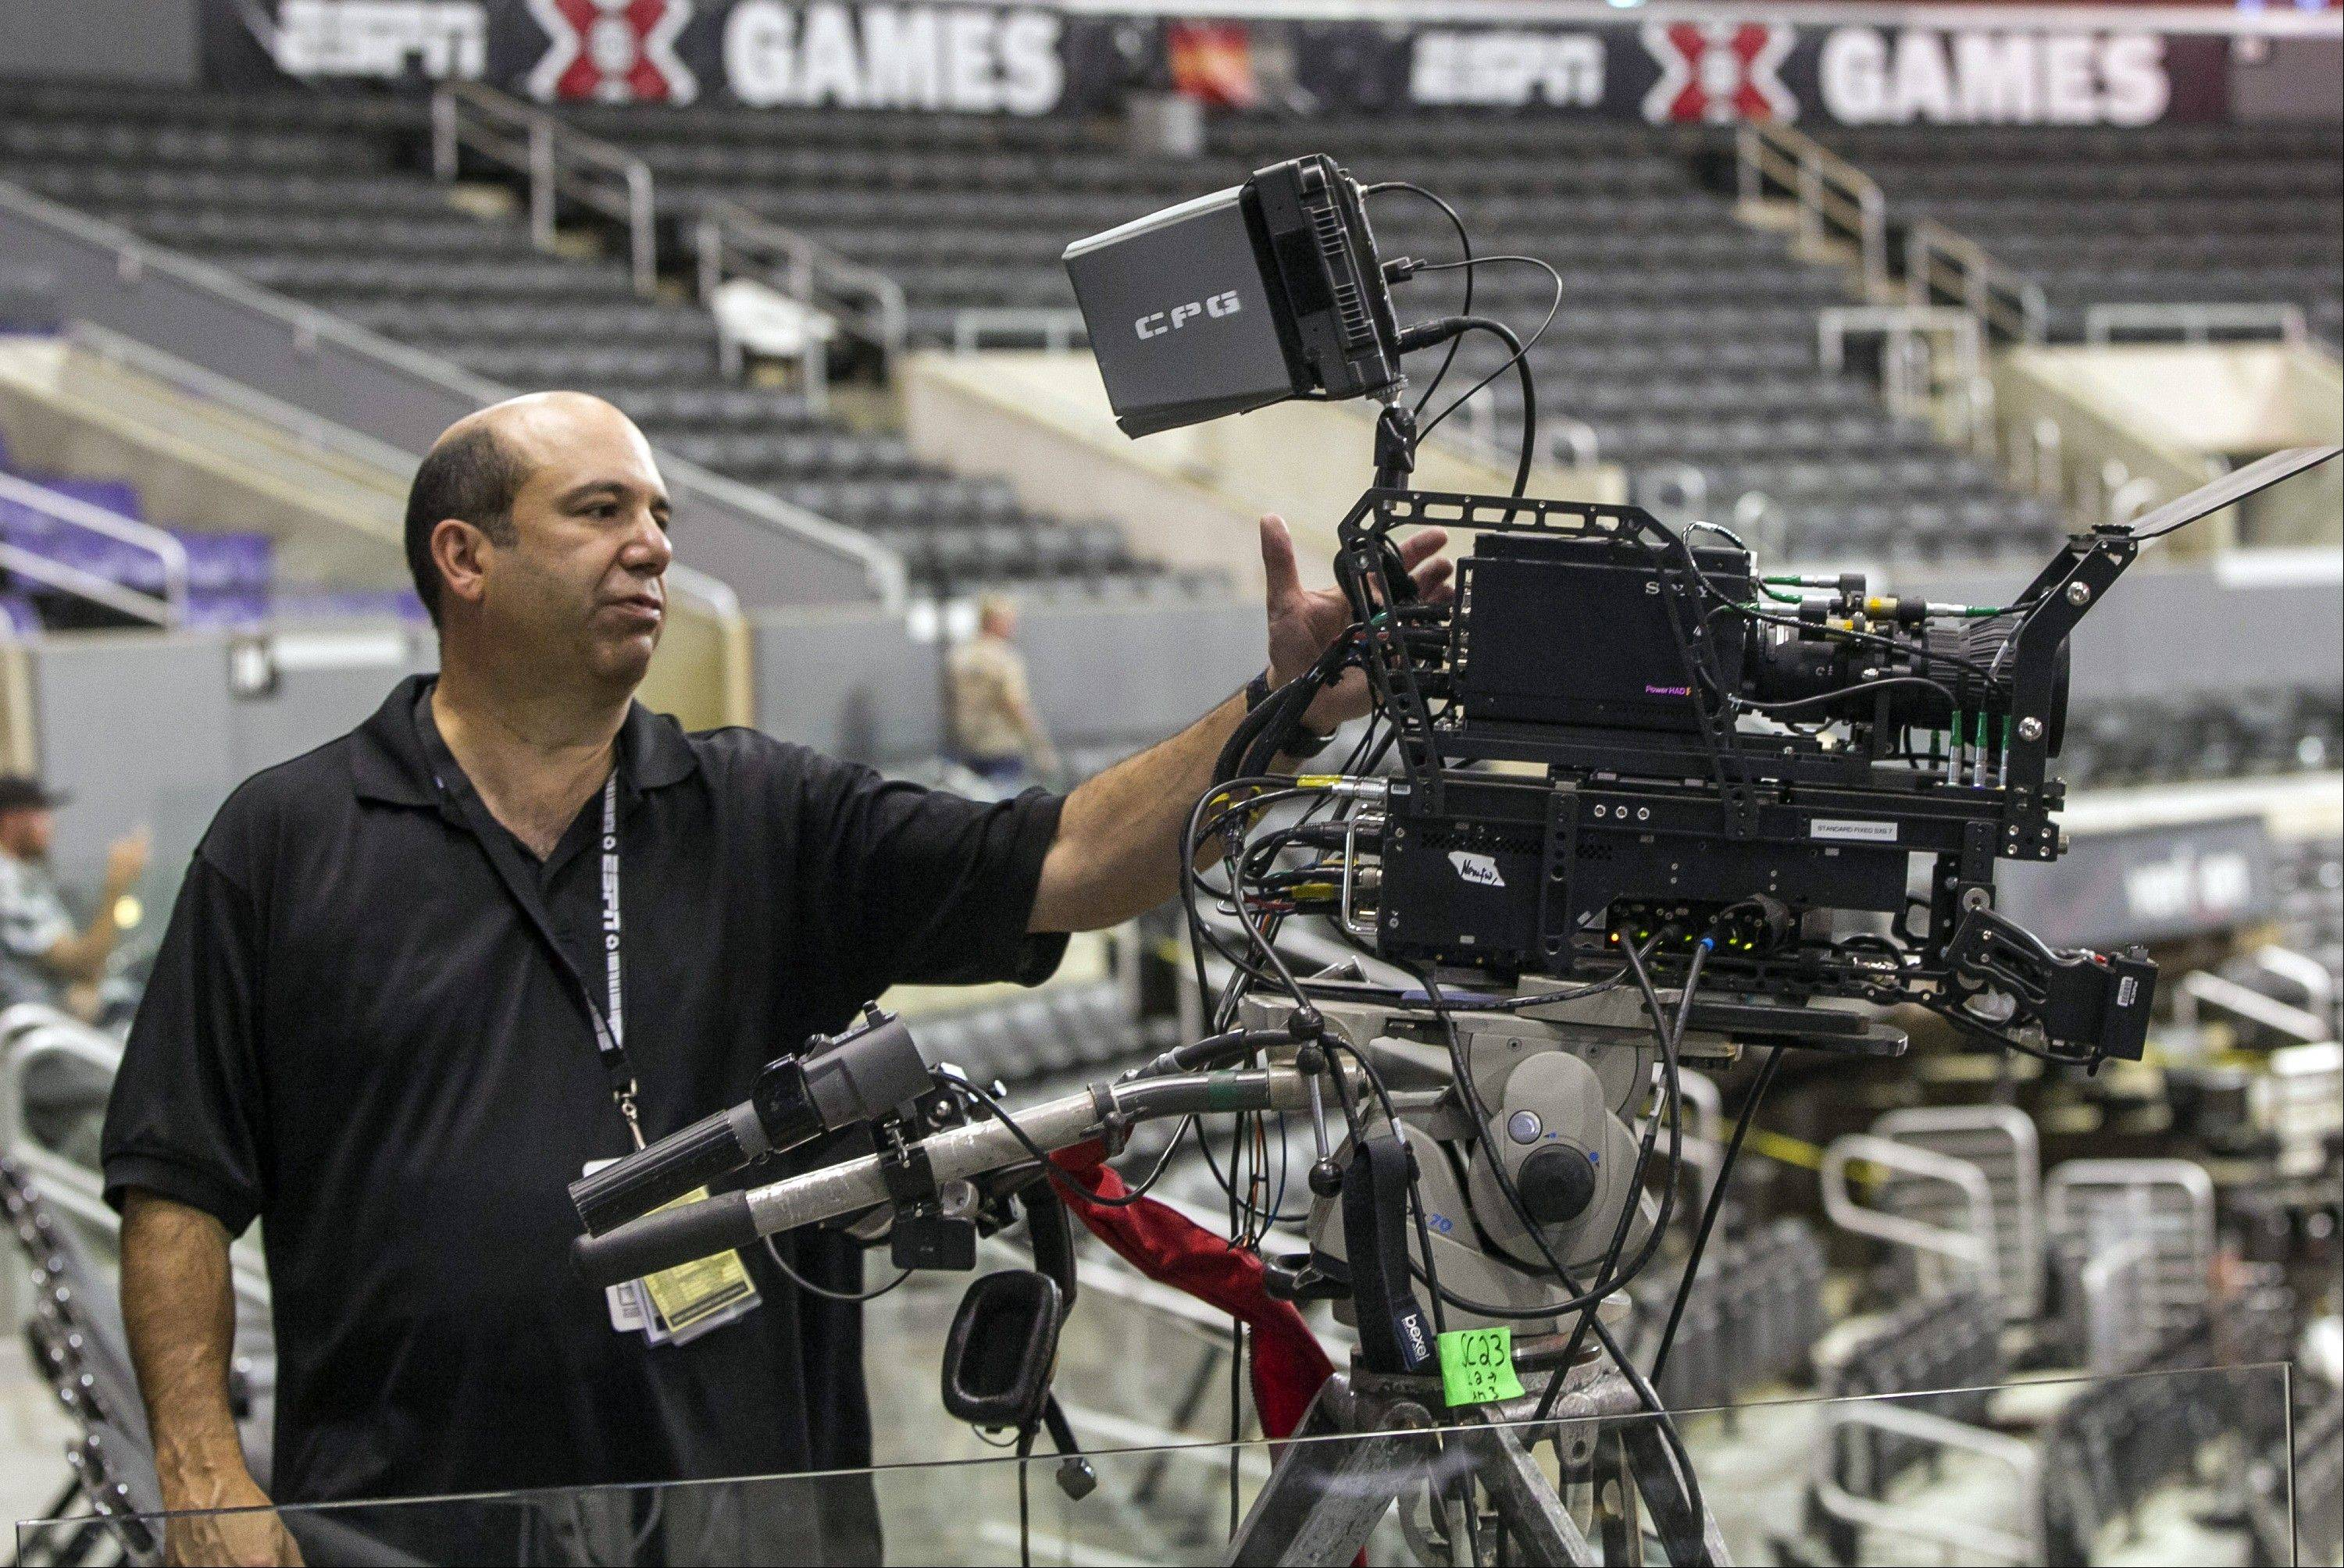 ASSOCIATED PRESS In this June 27, 2012, photo, ESPN coordinating producer Phil Orlins shows a 3-D camera set up used by ESPN 3-D Network coverage at the ESPN X-Games held at the Staples Center in Los Angeles. ESPN will stop broadcasting in 3-D by the end of the year, the network said Wednesday.